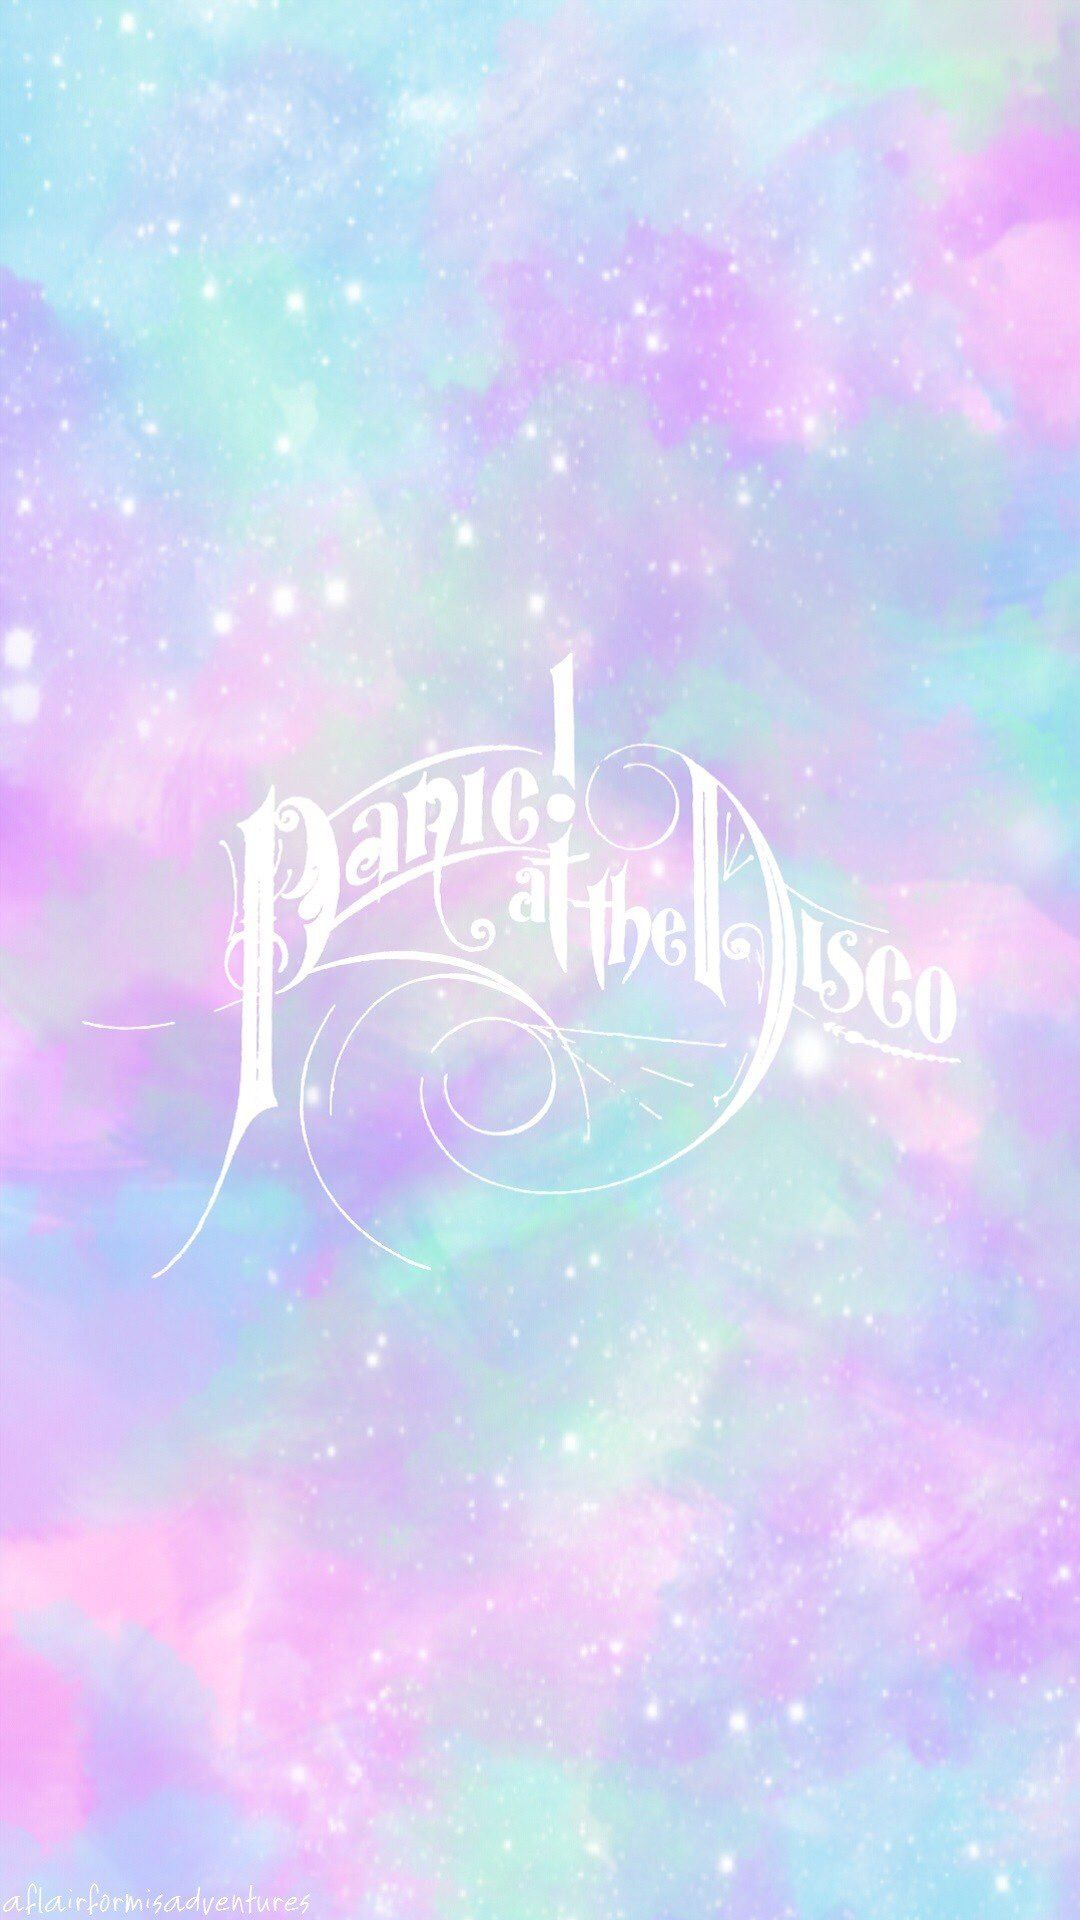 Fall Out Boy Mania Wallpaper Iphone Pin By Kim Hanscom On Emo Trinity Panic At The Disco